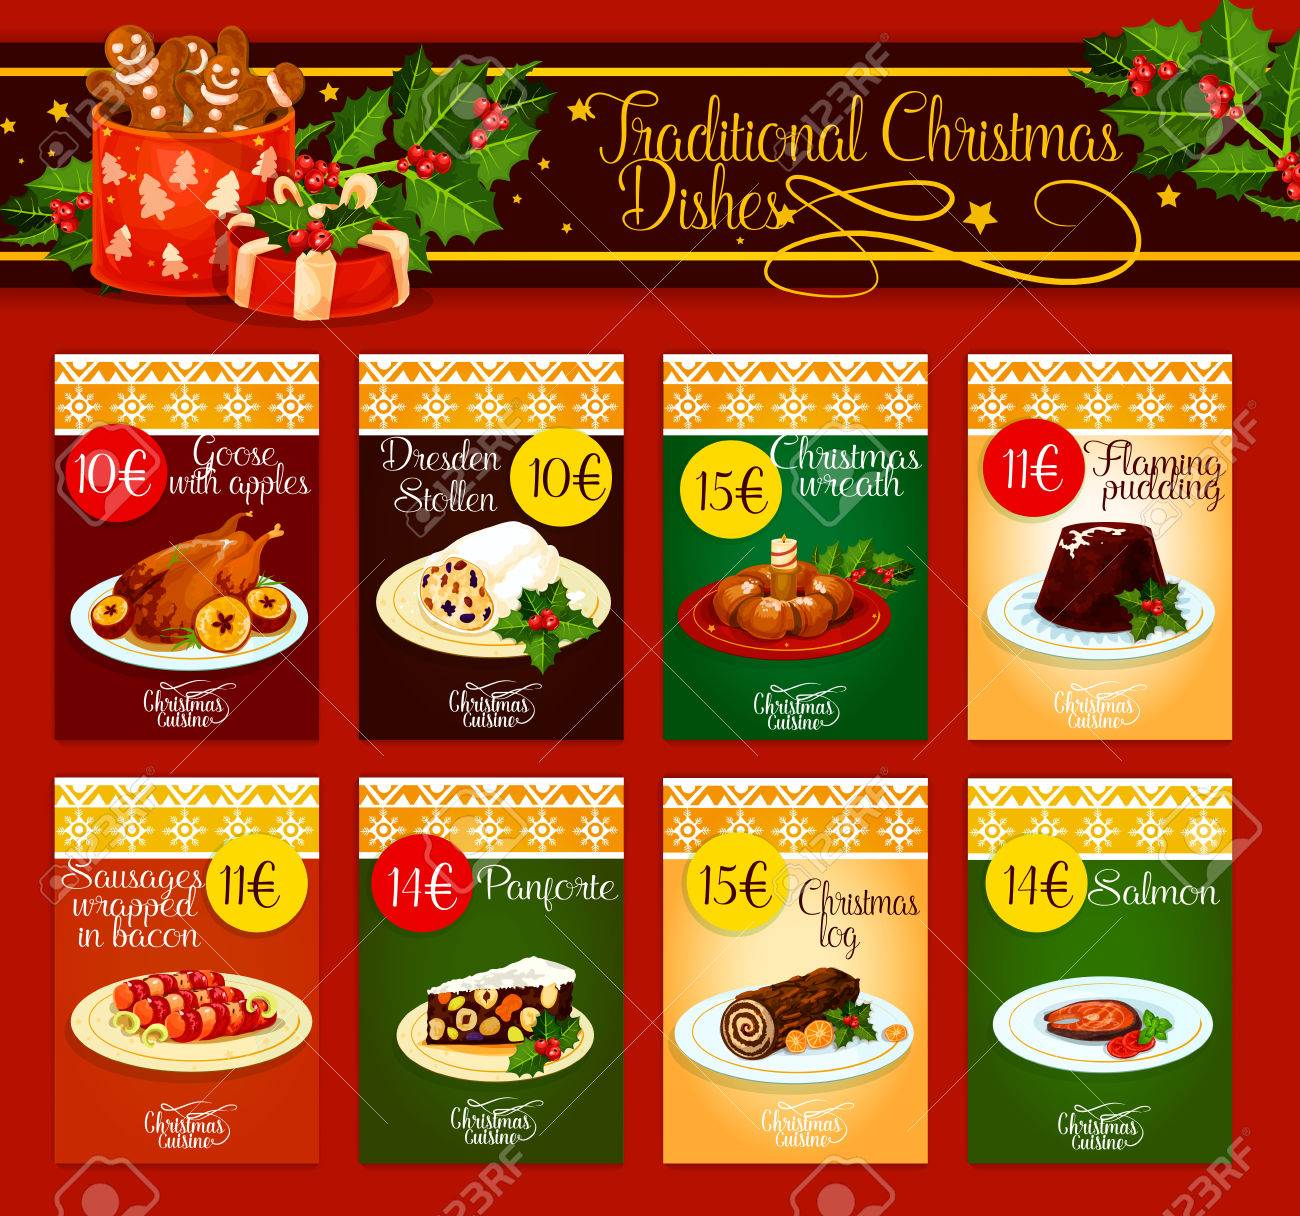 Christmas Dinner Menu Template With Meat, Fish And Pastry Dishes ...